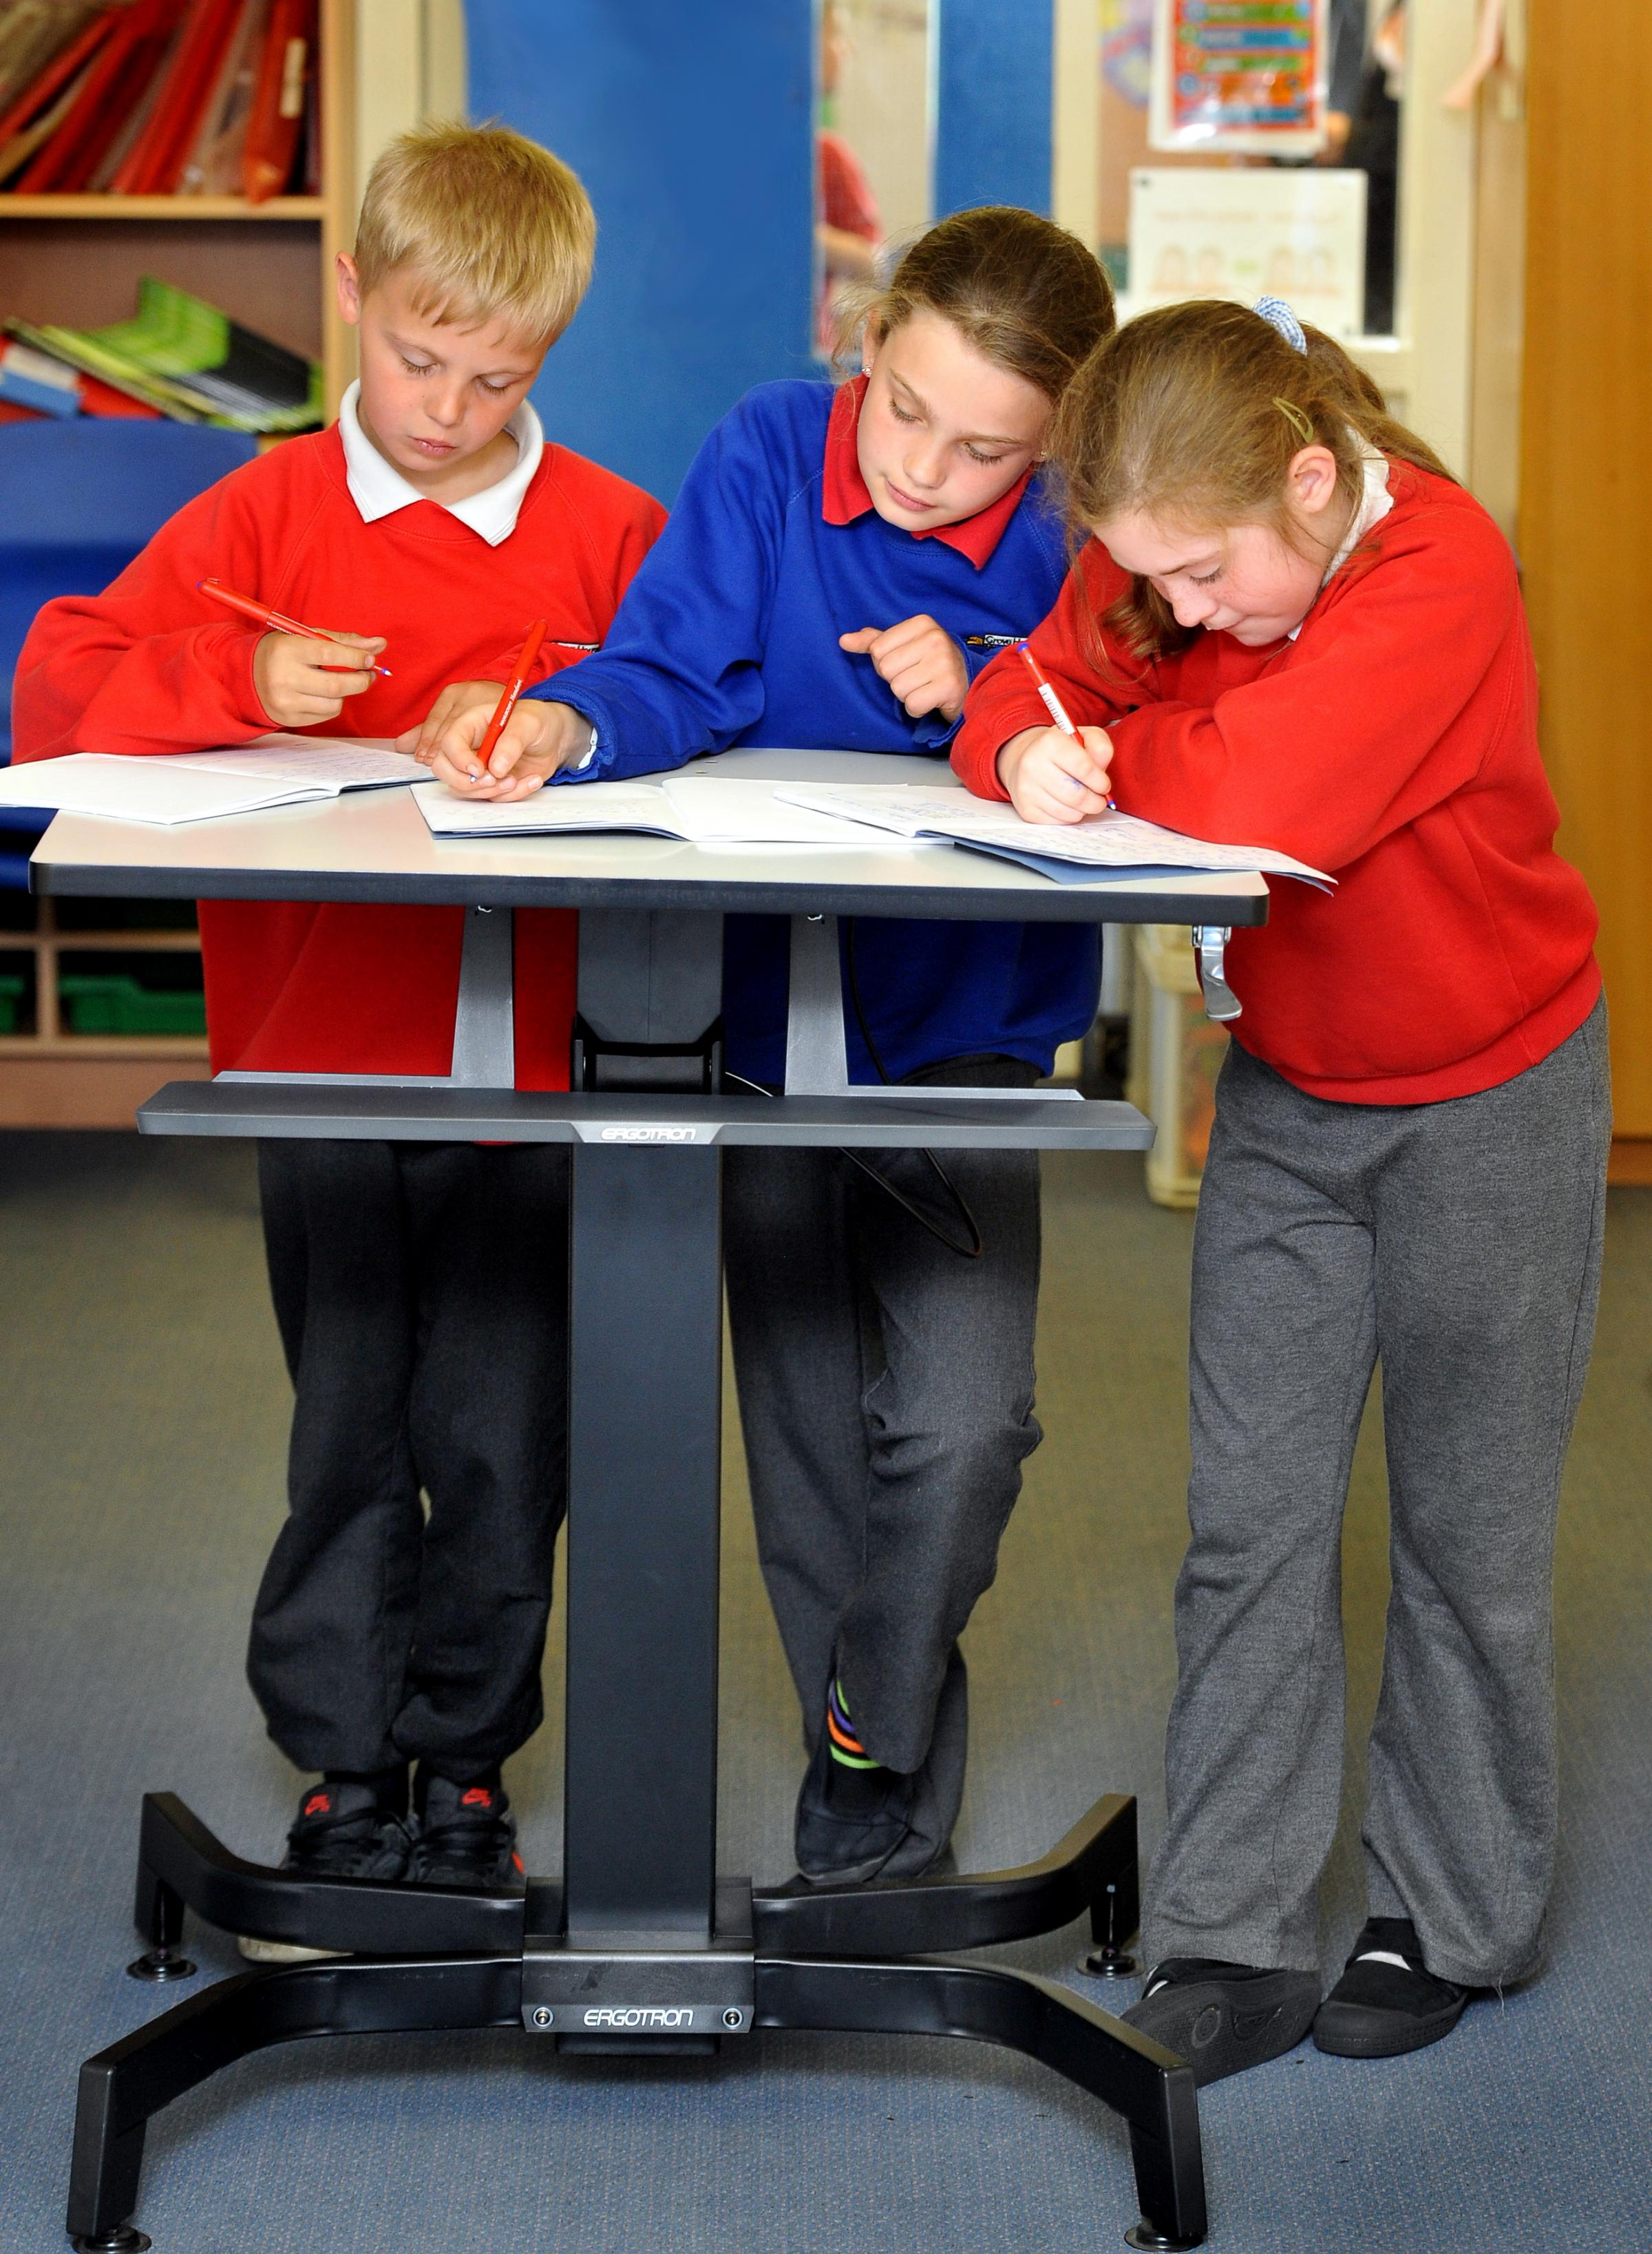 Pupils learn on the innovative sit-stand desks